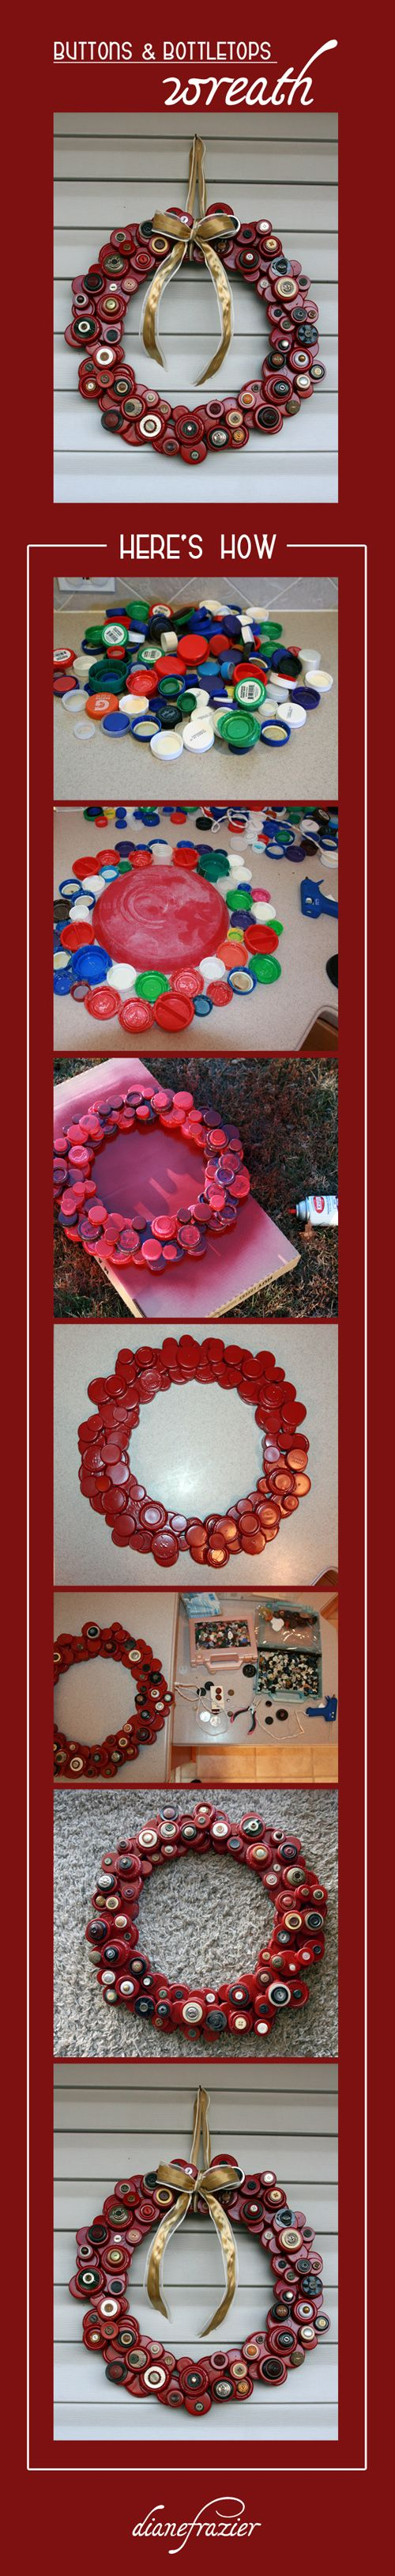 Plastic Lids / Bottle-tops + Hot Glue + Spray Paint + Old Buttons + a Bow = Fab Wreath :)